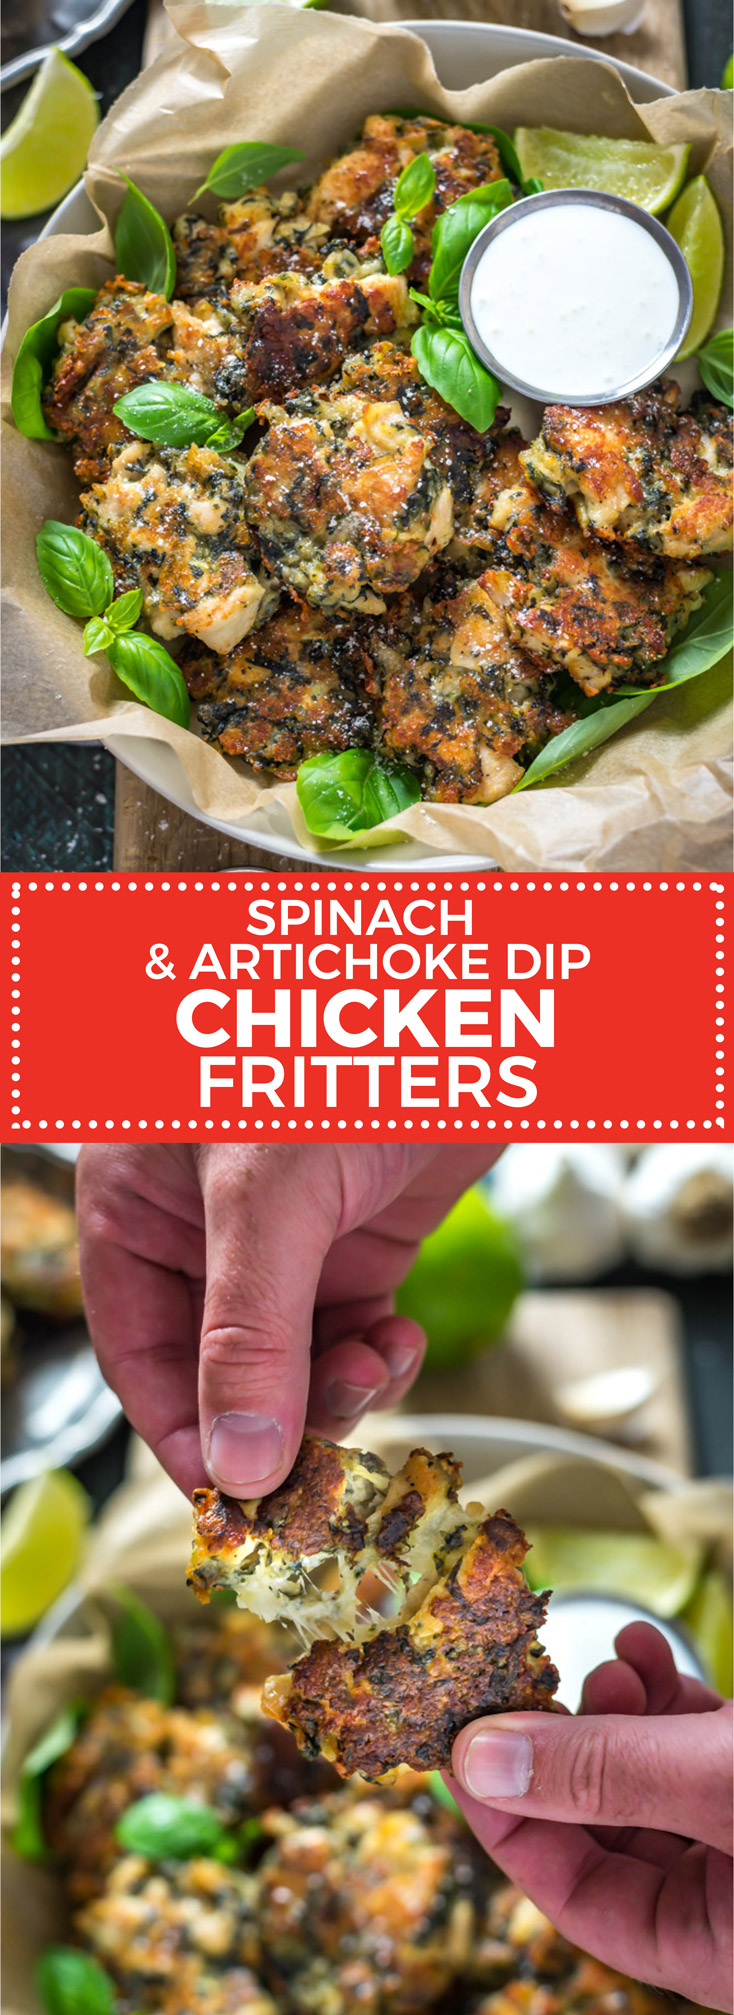 Spinach and Artichoke Dip Chicken Fritters. These fritters are going to be your new favorite way to use chicken breasts. They're tender and juicy on the inside with plenty of melted cheese and a crisp crust, and they taste just like your favorite dip!| hostthetoast.com